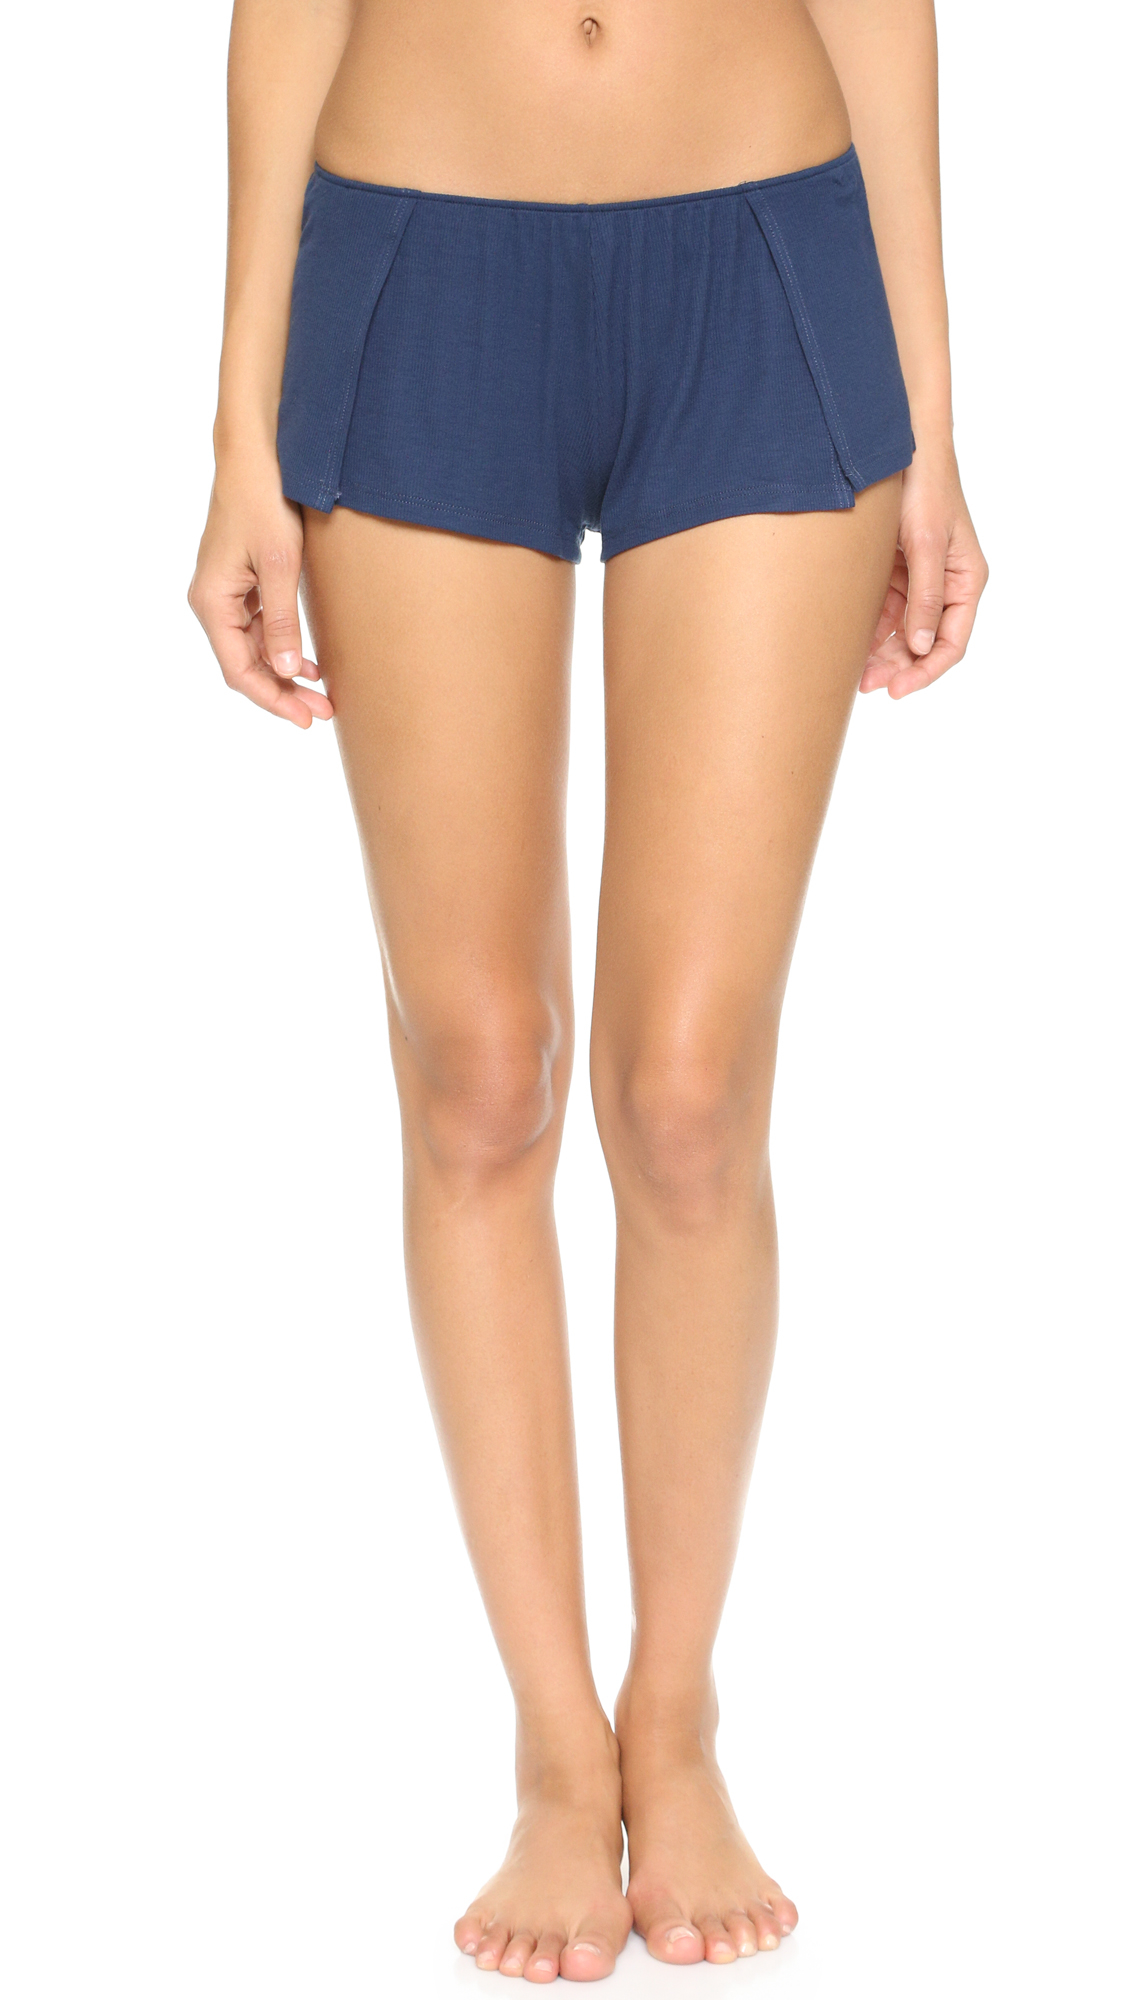 5940d61b09 Lyst - Only Hearts Feather Weight Rib Sleep Shorts in Blue